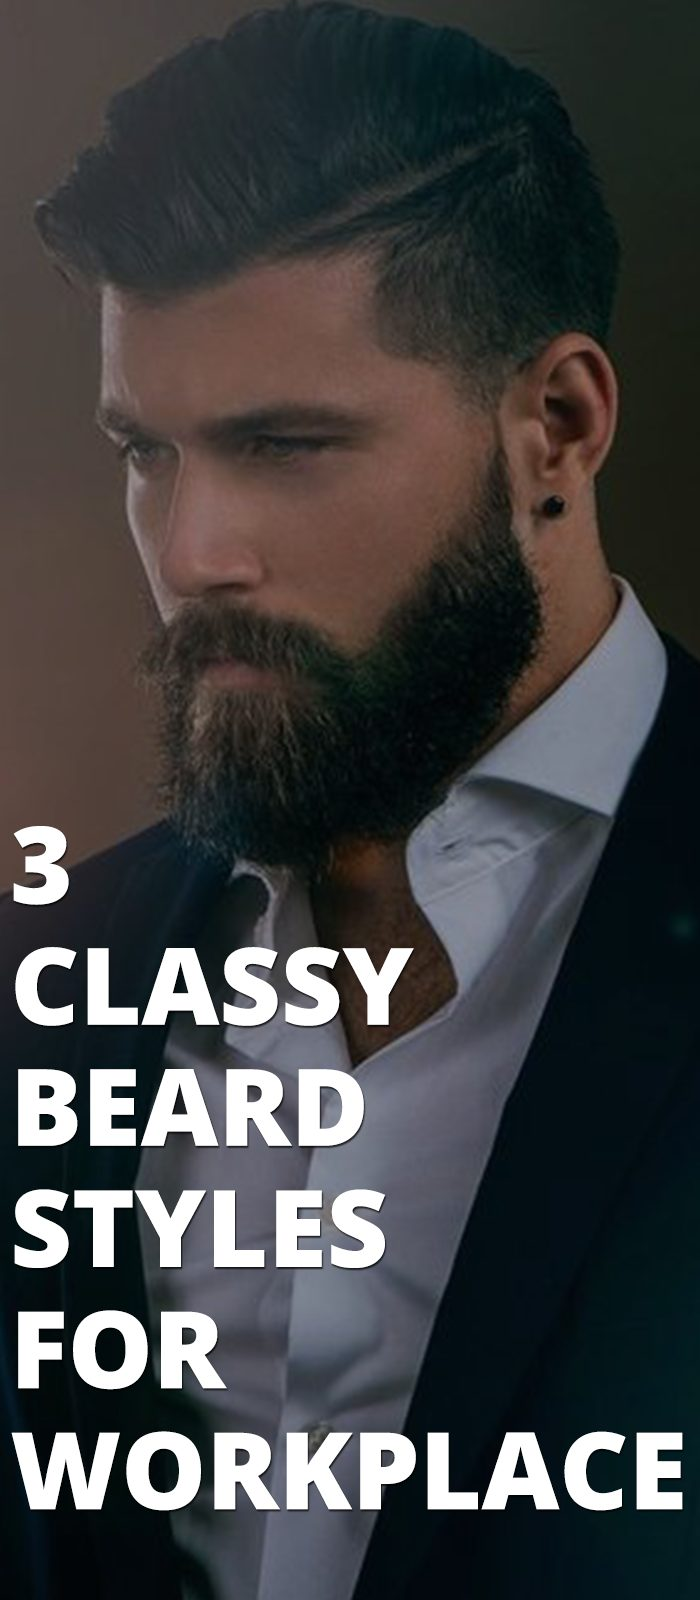 3 Classy Beard Styles For Workplace